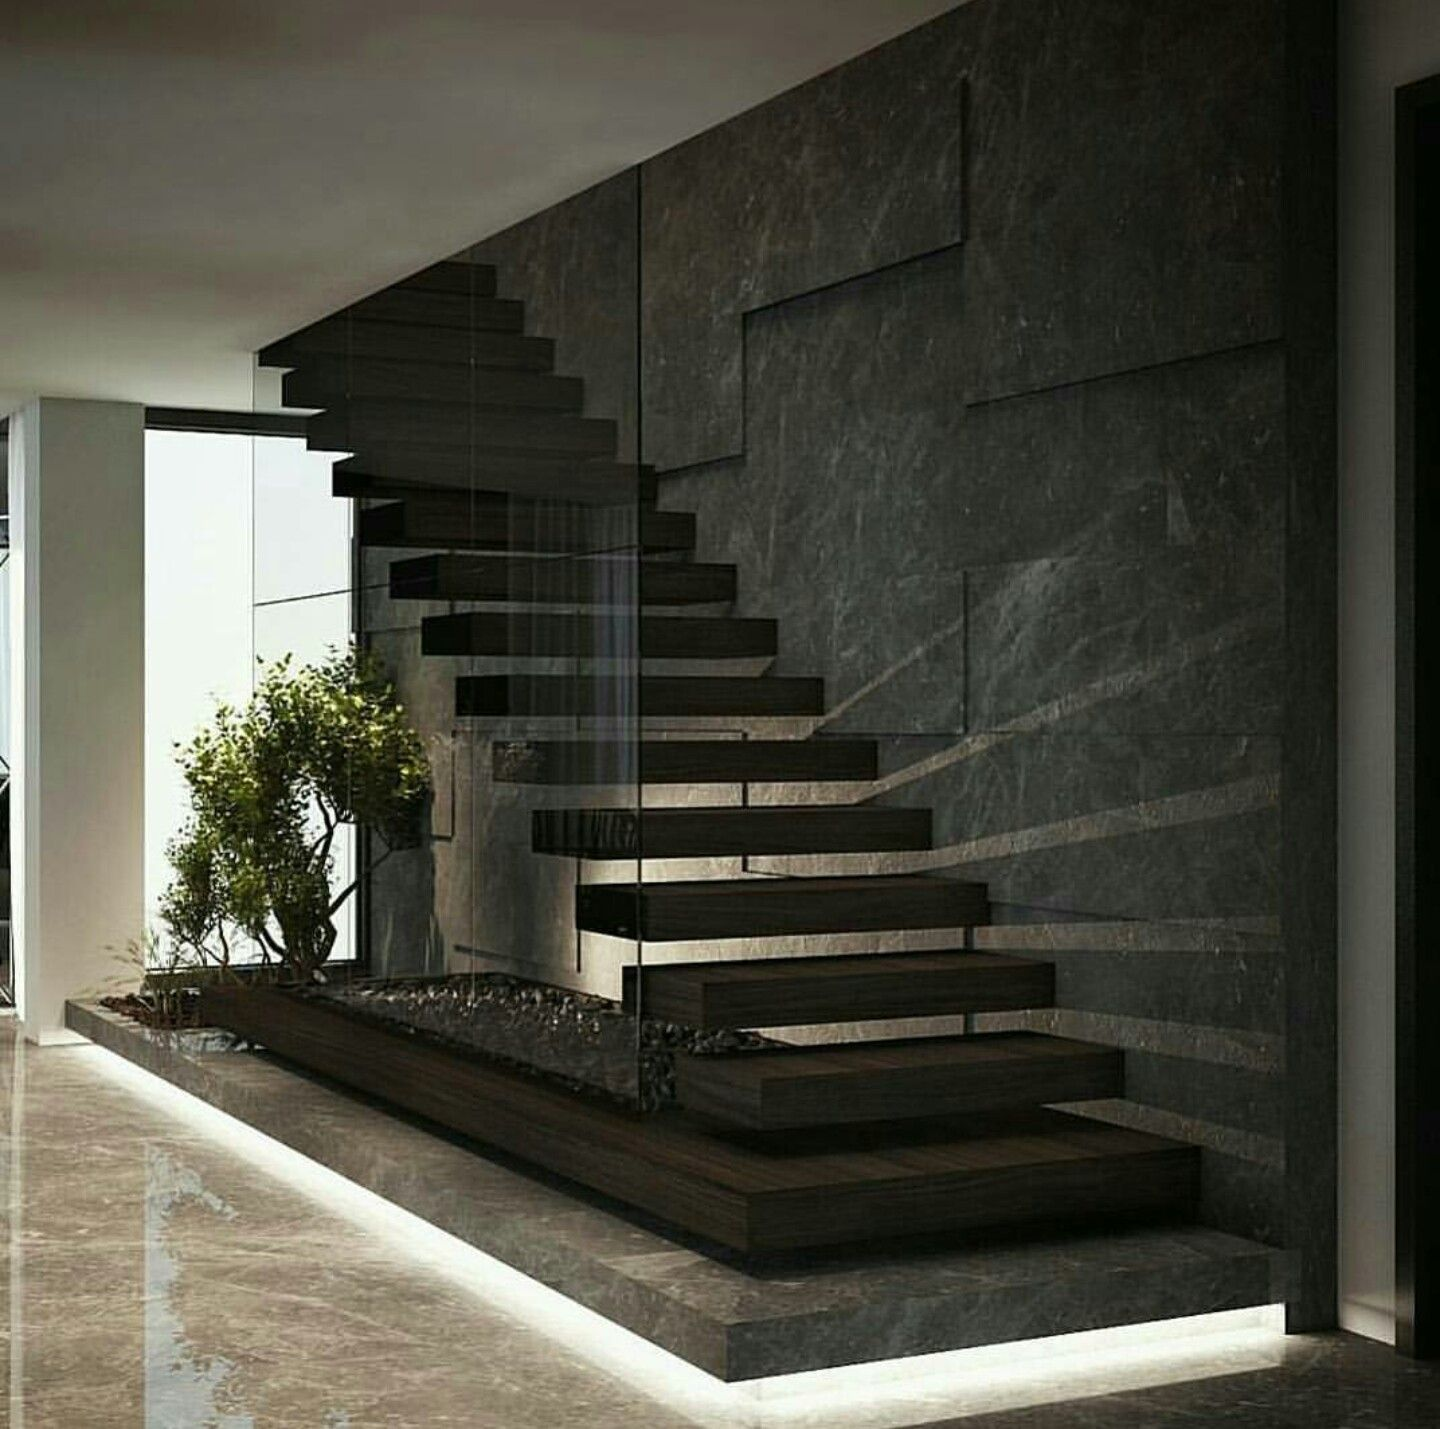 Pin By Esnaider Esquivel On Decoracao Stairway Design Home Stairs Design Stairs Design Modern